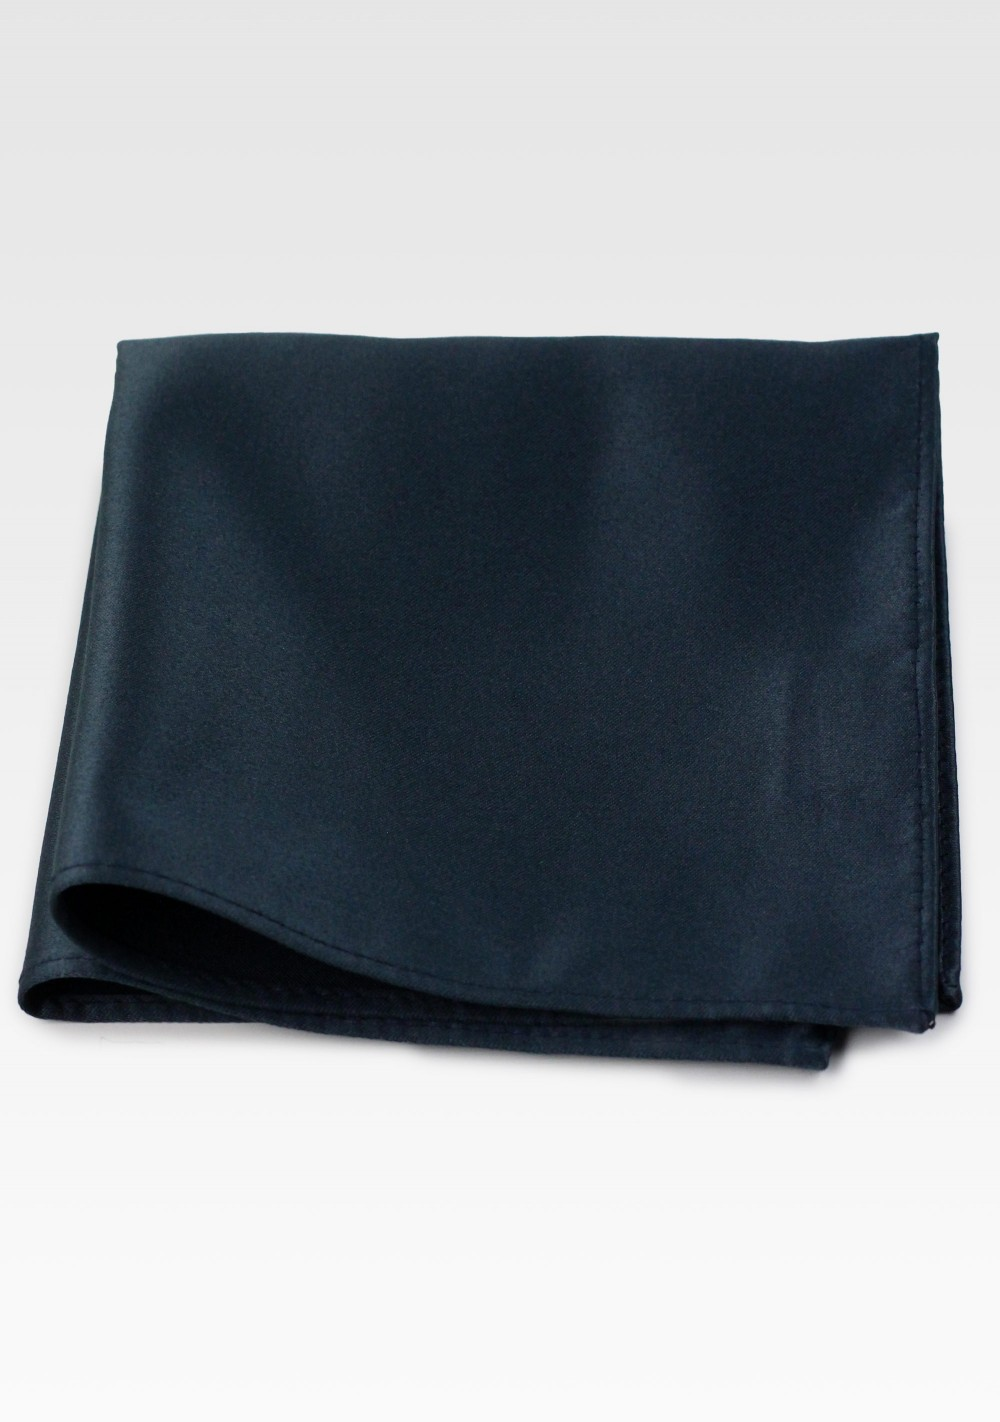 Charcoal Colored Suit Hanky